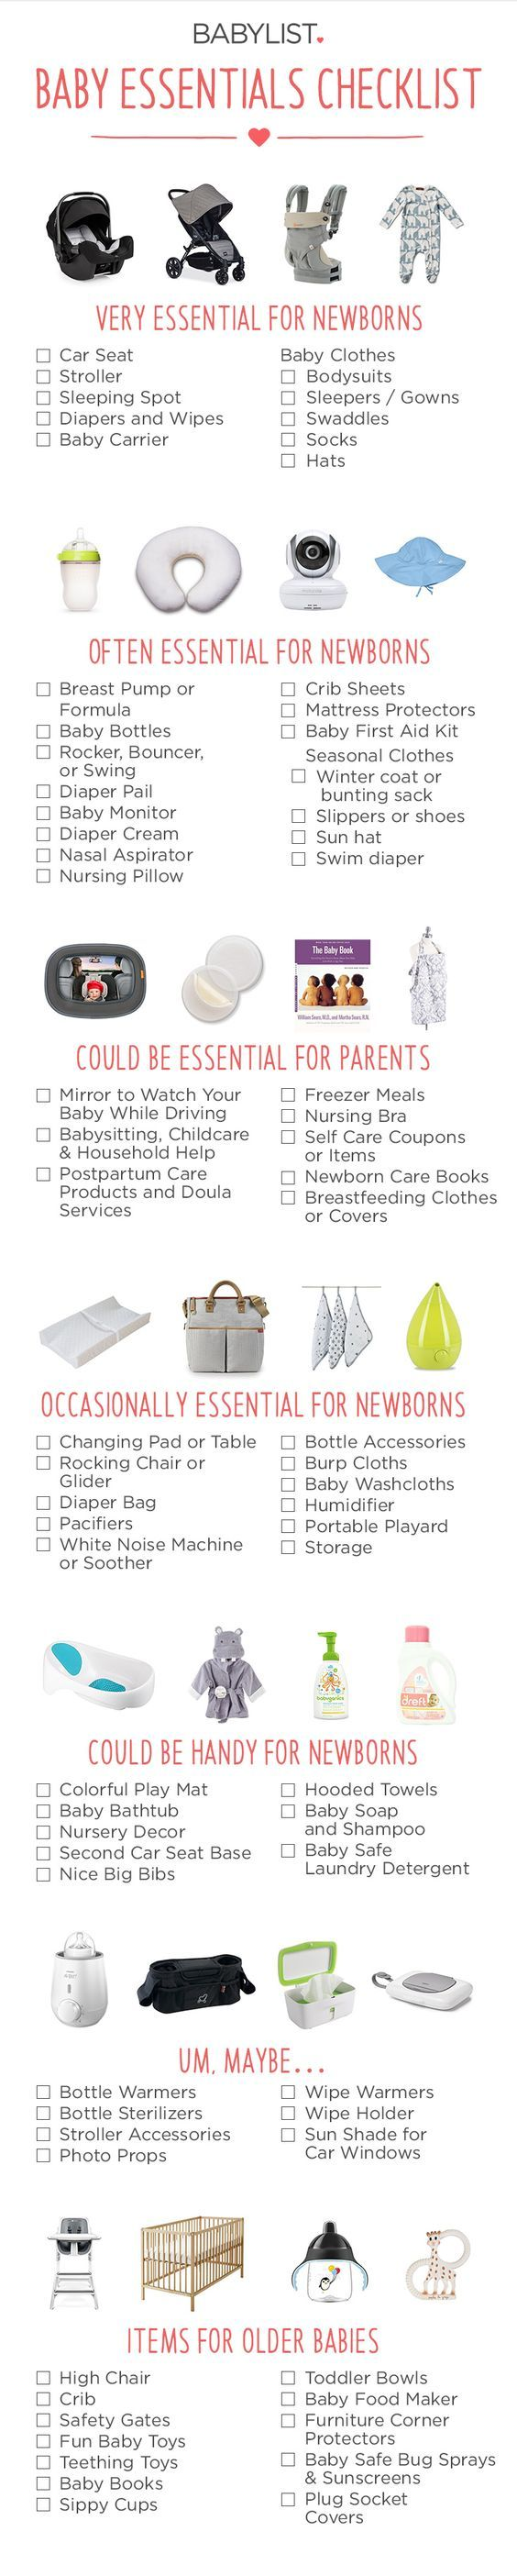 """Get a checklist of everything you need for your newborn: from """"absolute essentials"""" to """"nice to haves"""""""